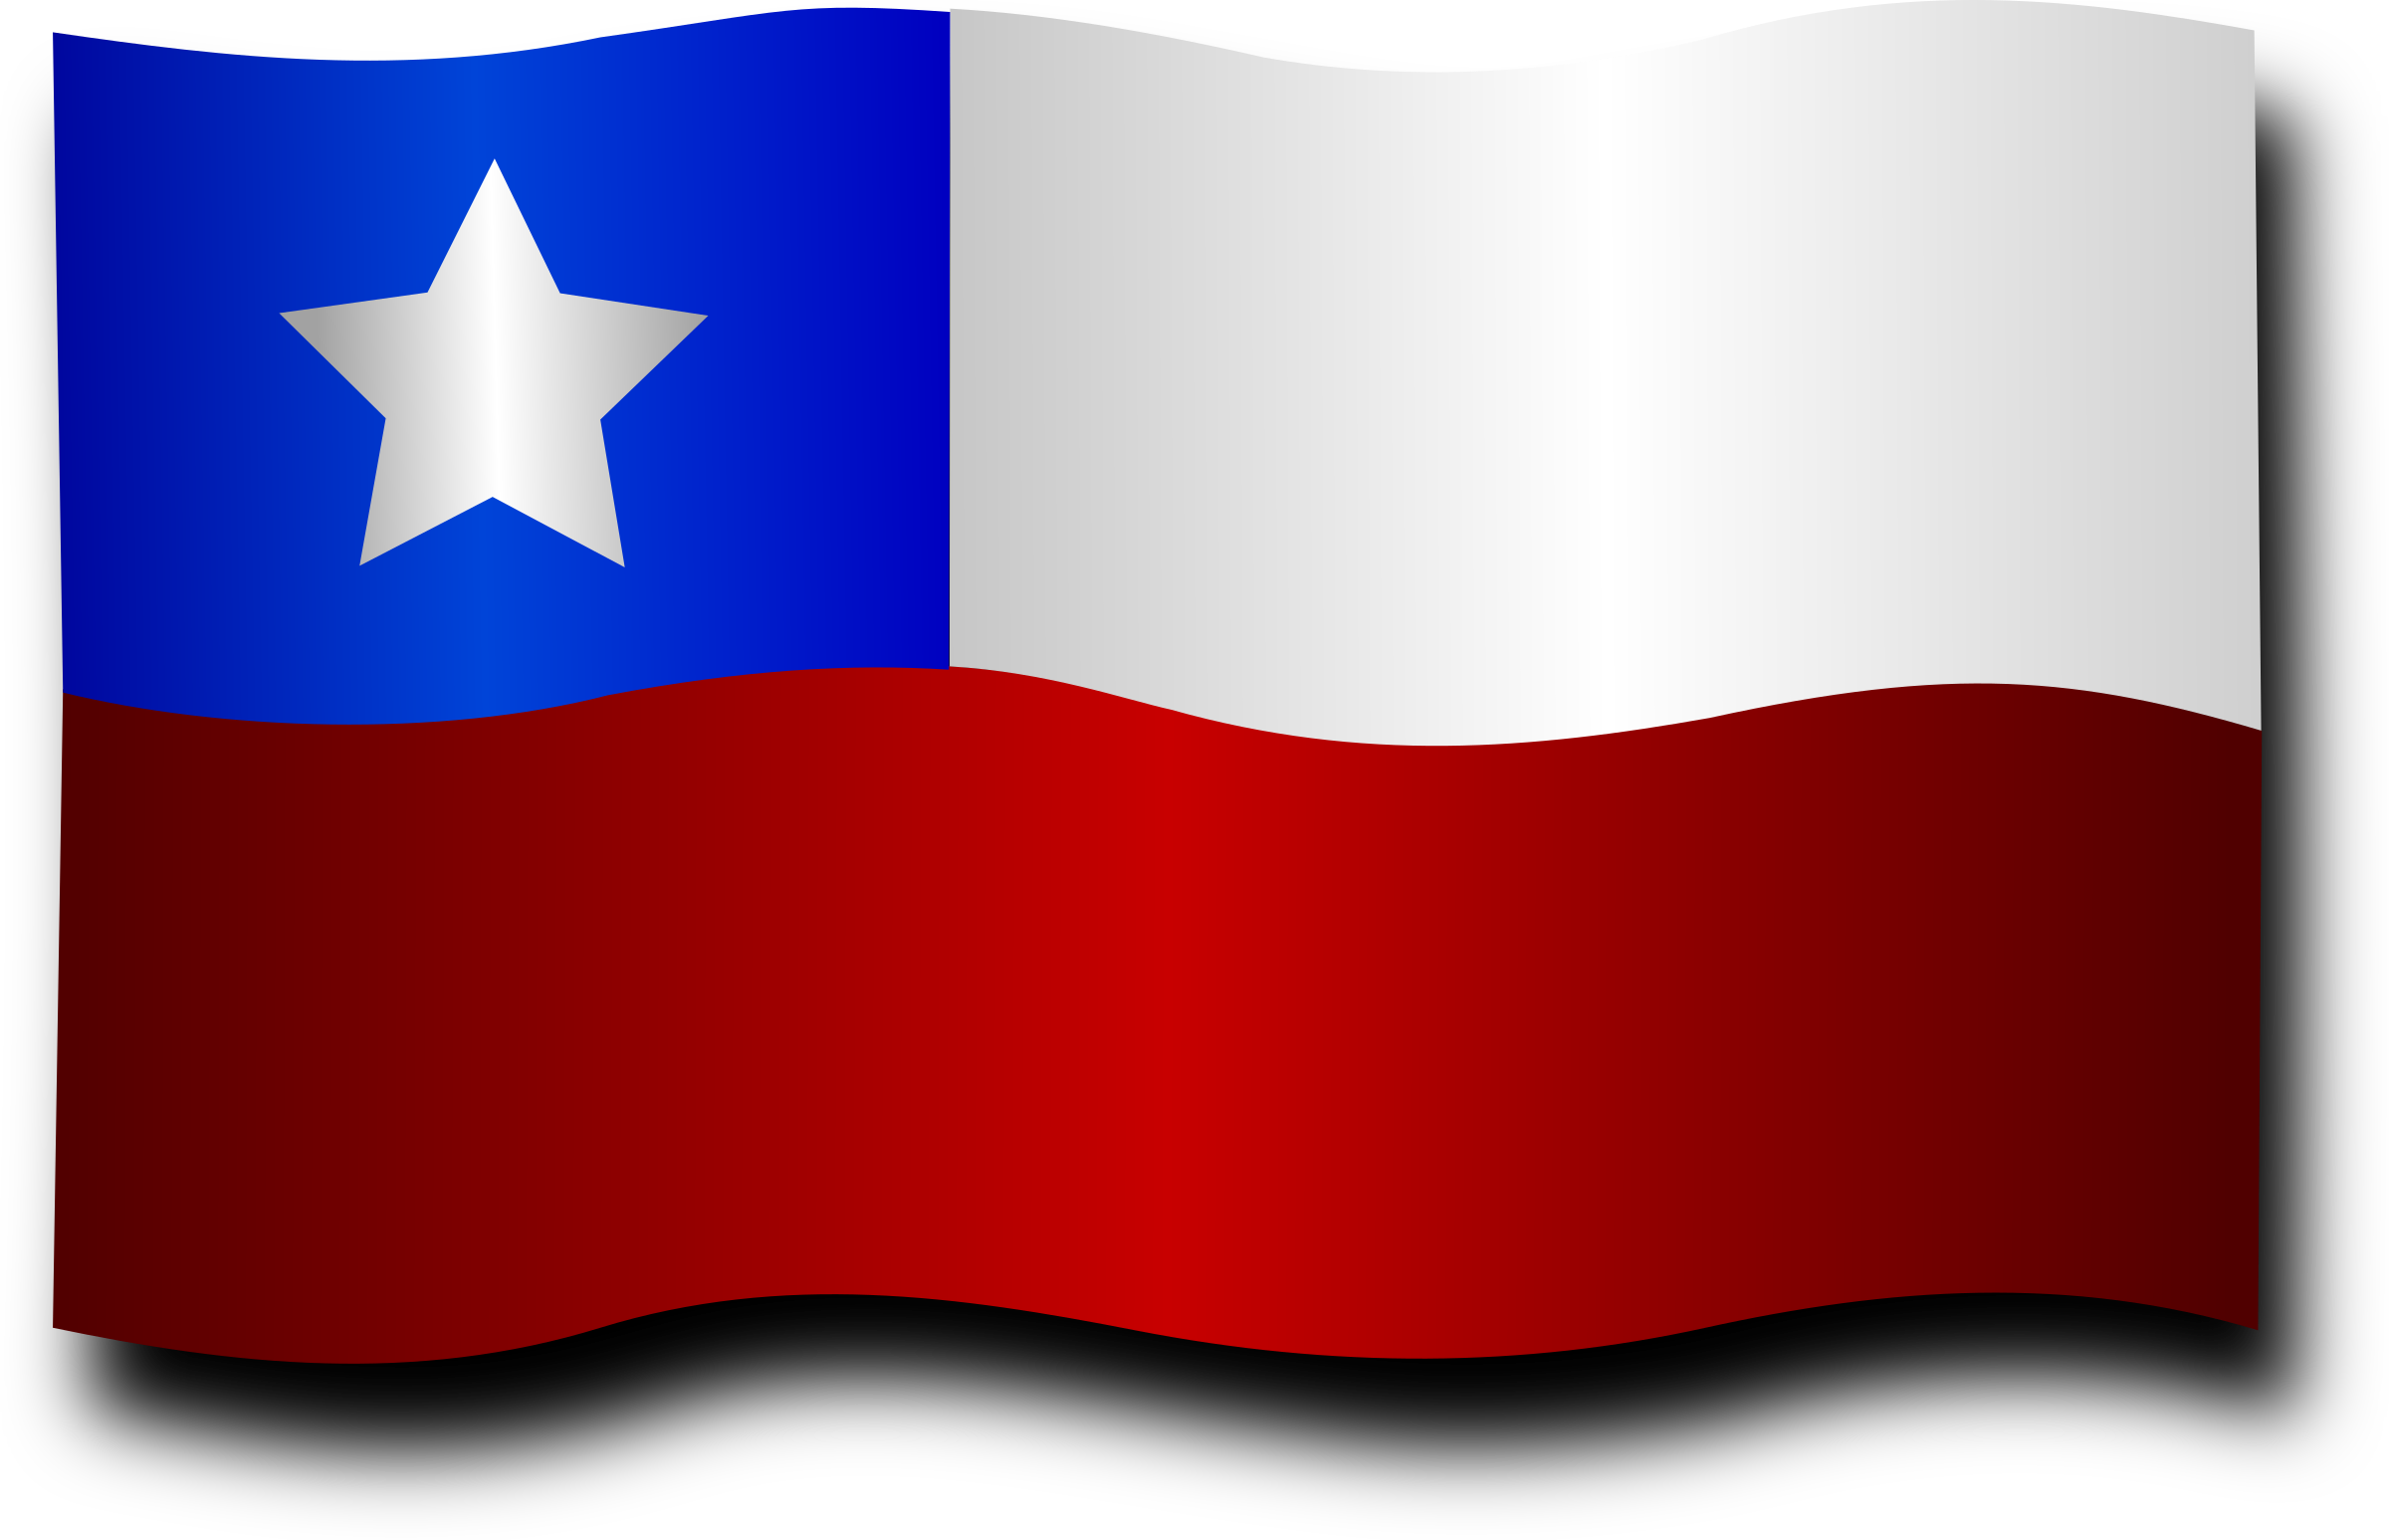 Chilean Flag 6 by Merlin2525